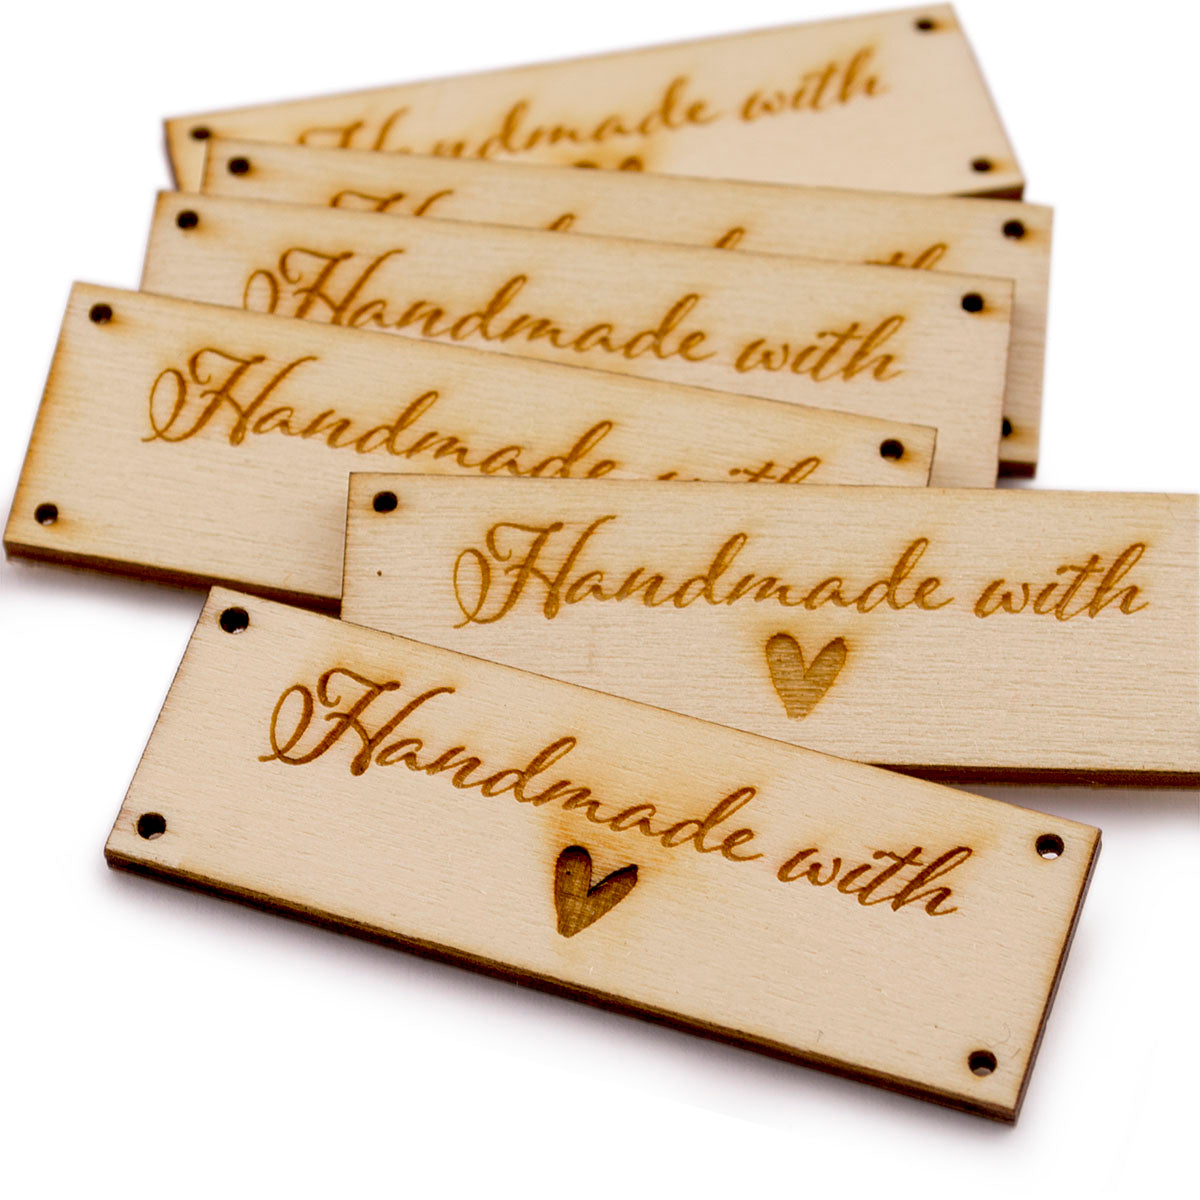 Wooden Rectangle Product Tags Handmade with Love Tags for Handmade Crochet Knitted Item